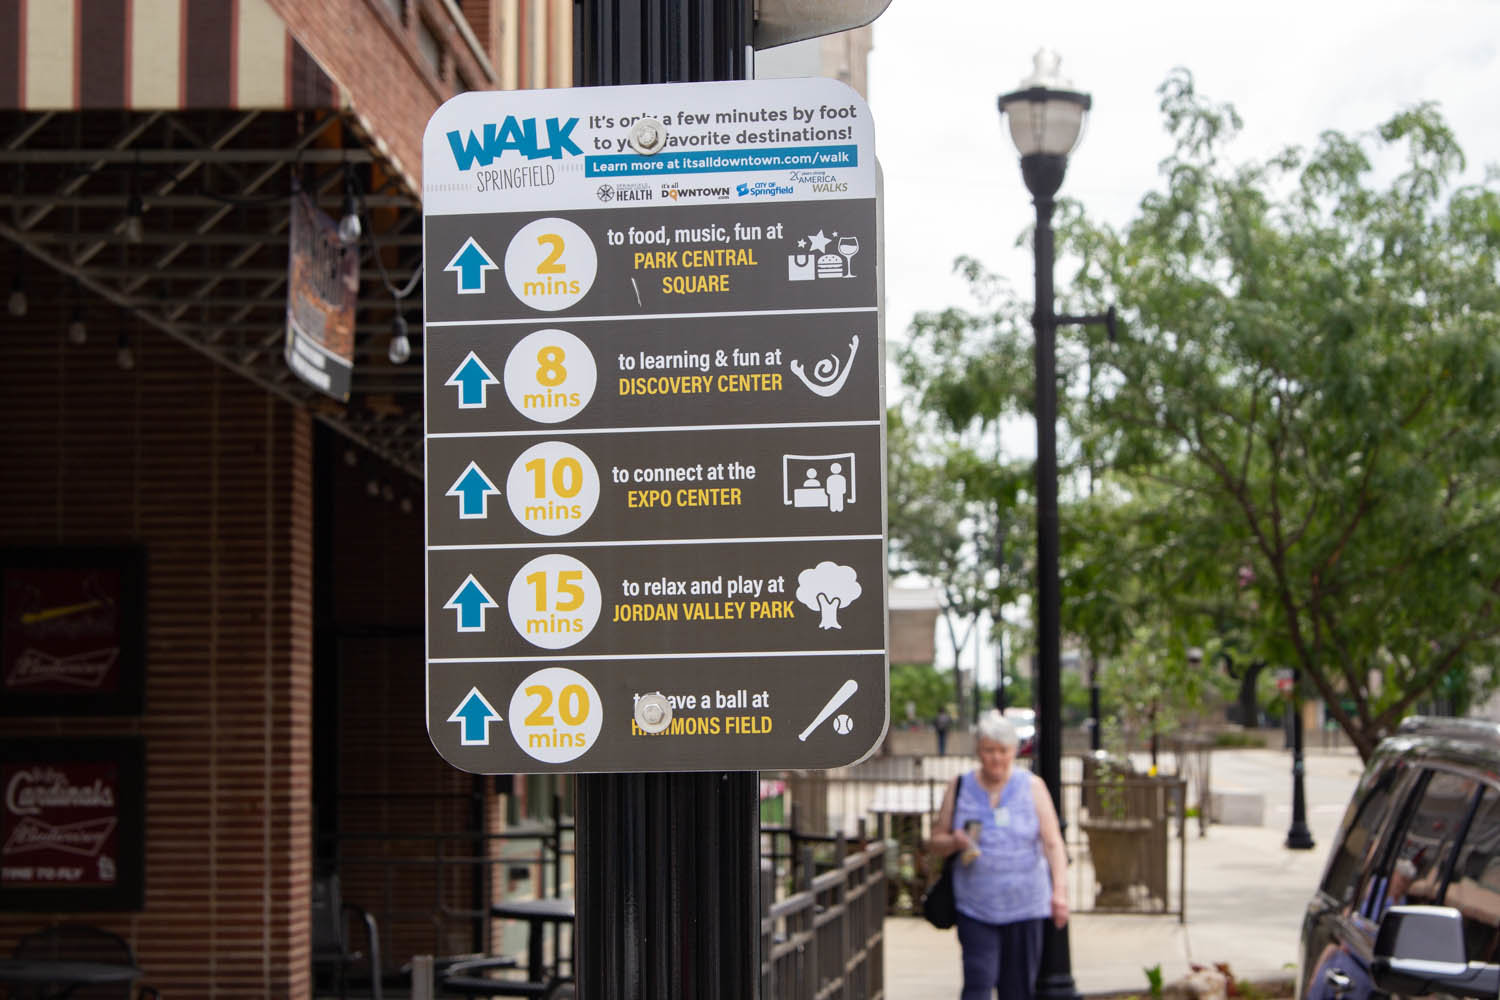 A sign near the intersection of Park Central West and Campbell Avenue provides a guide for walking visitors.